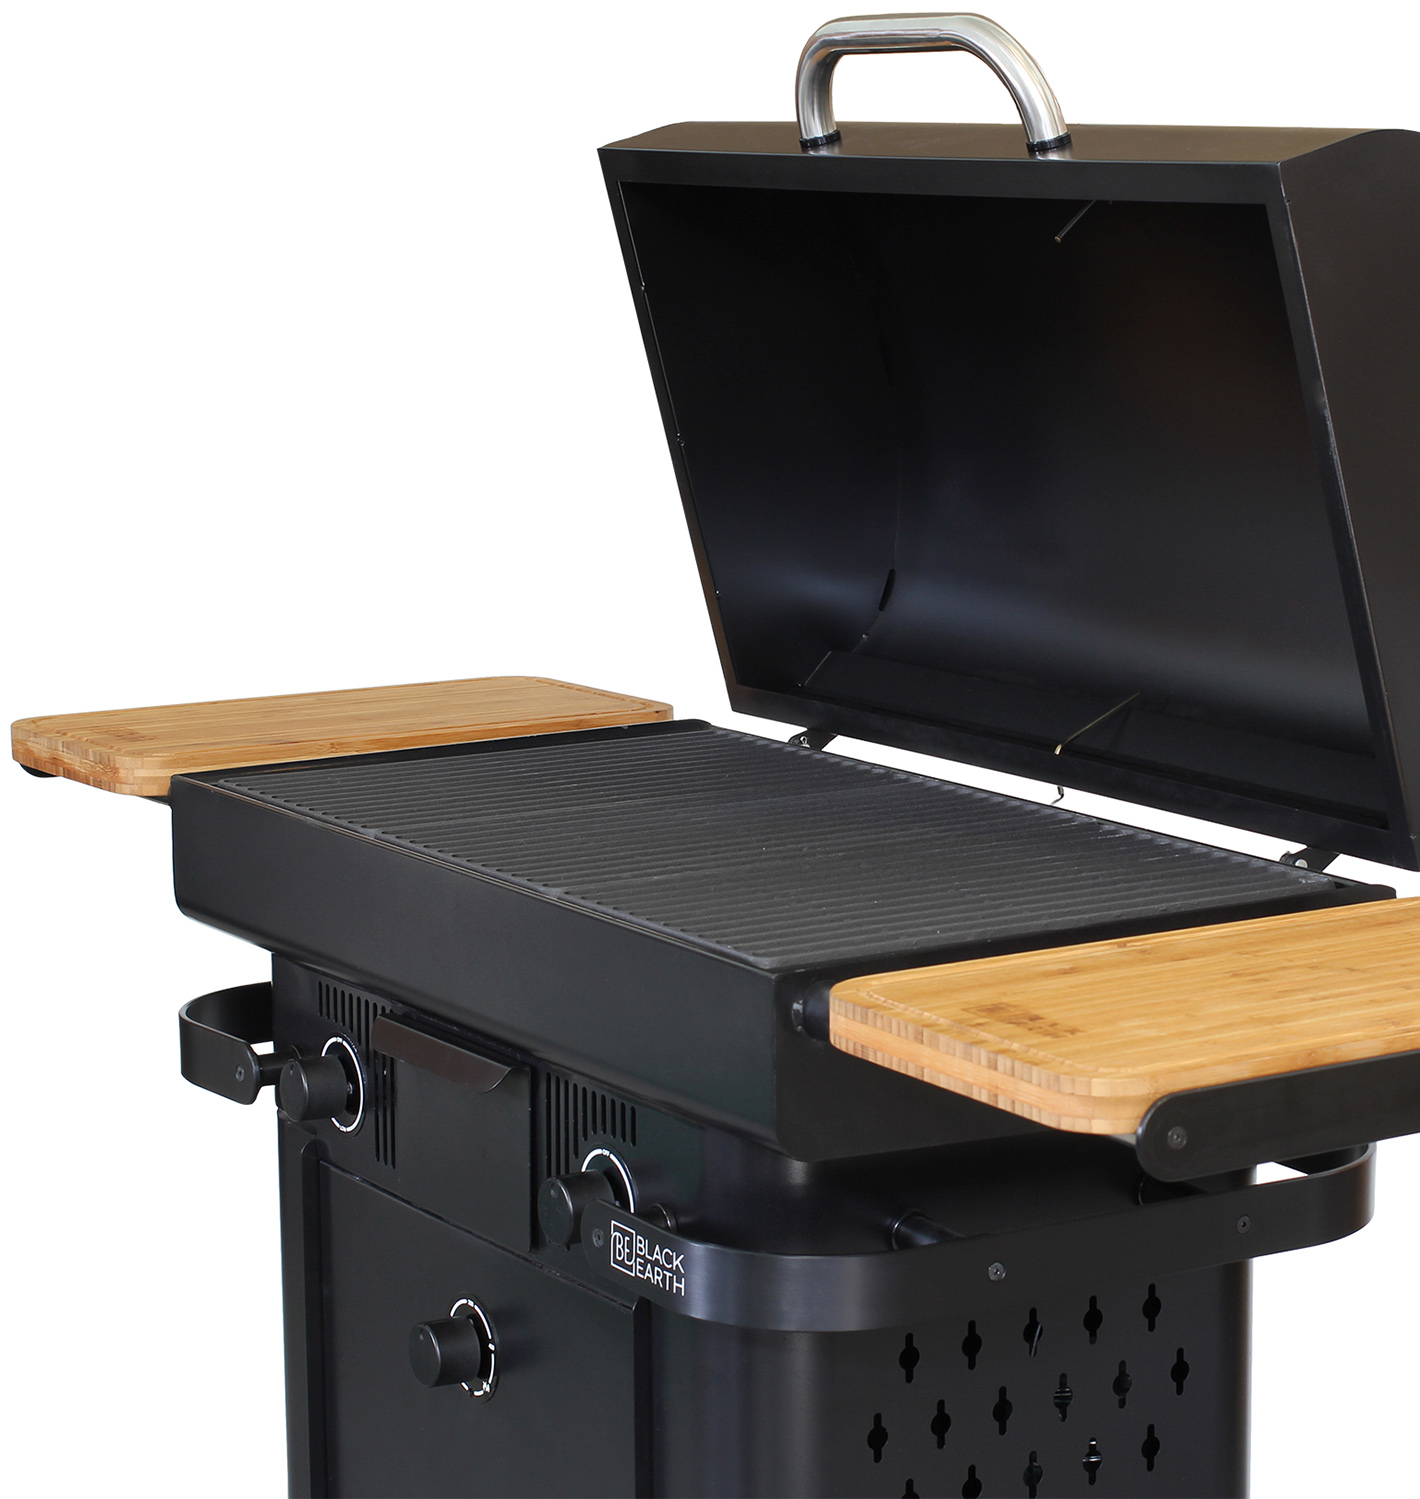 view category Black Earth Grills